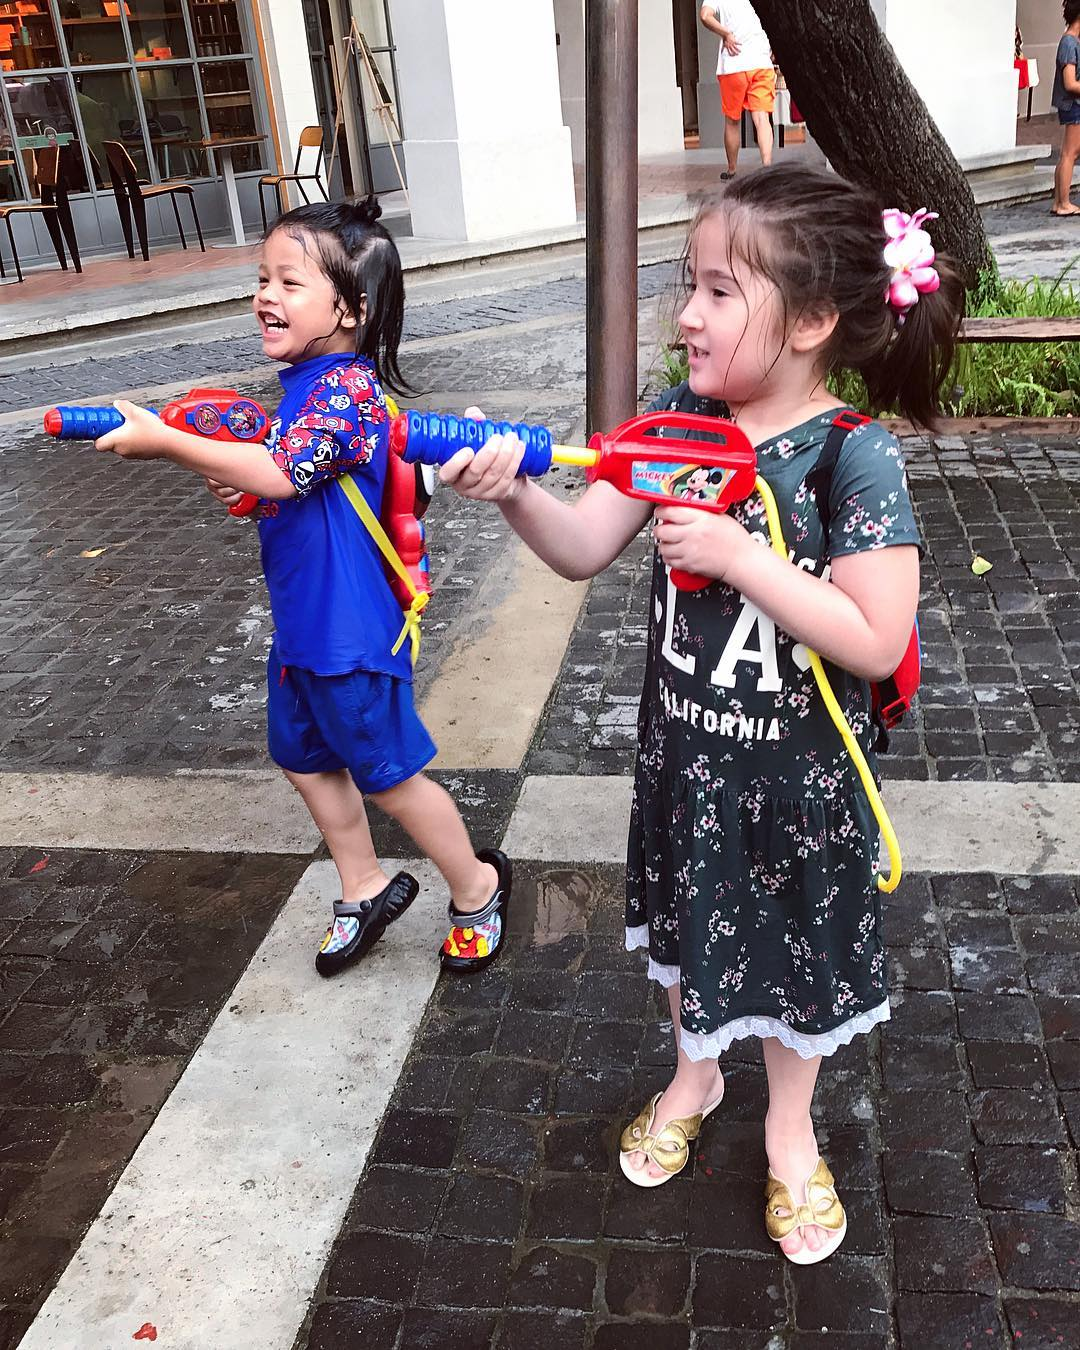 Two young girls with water guns during Songkran in Thailand